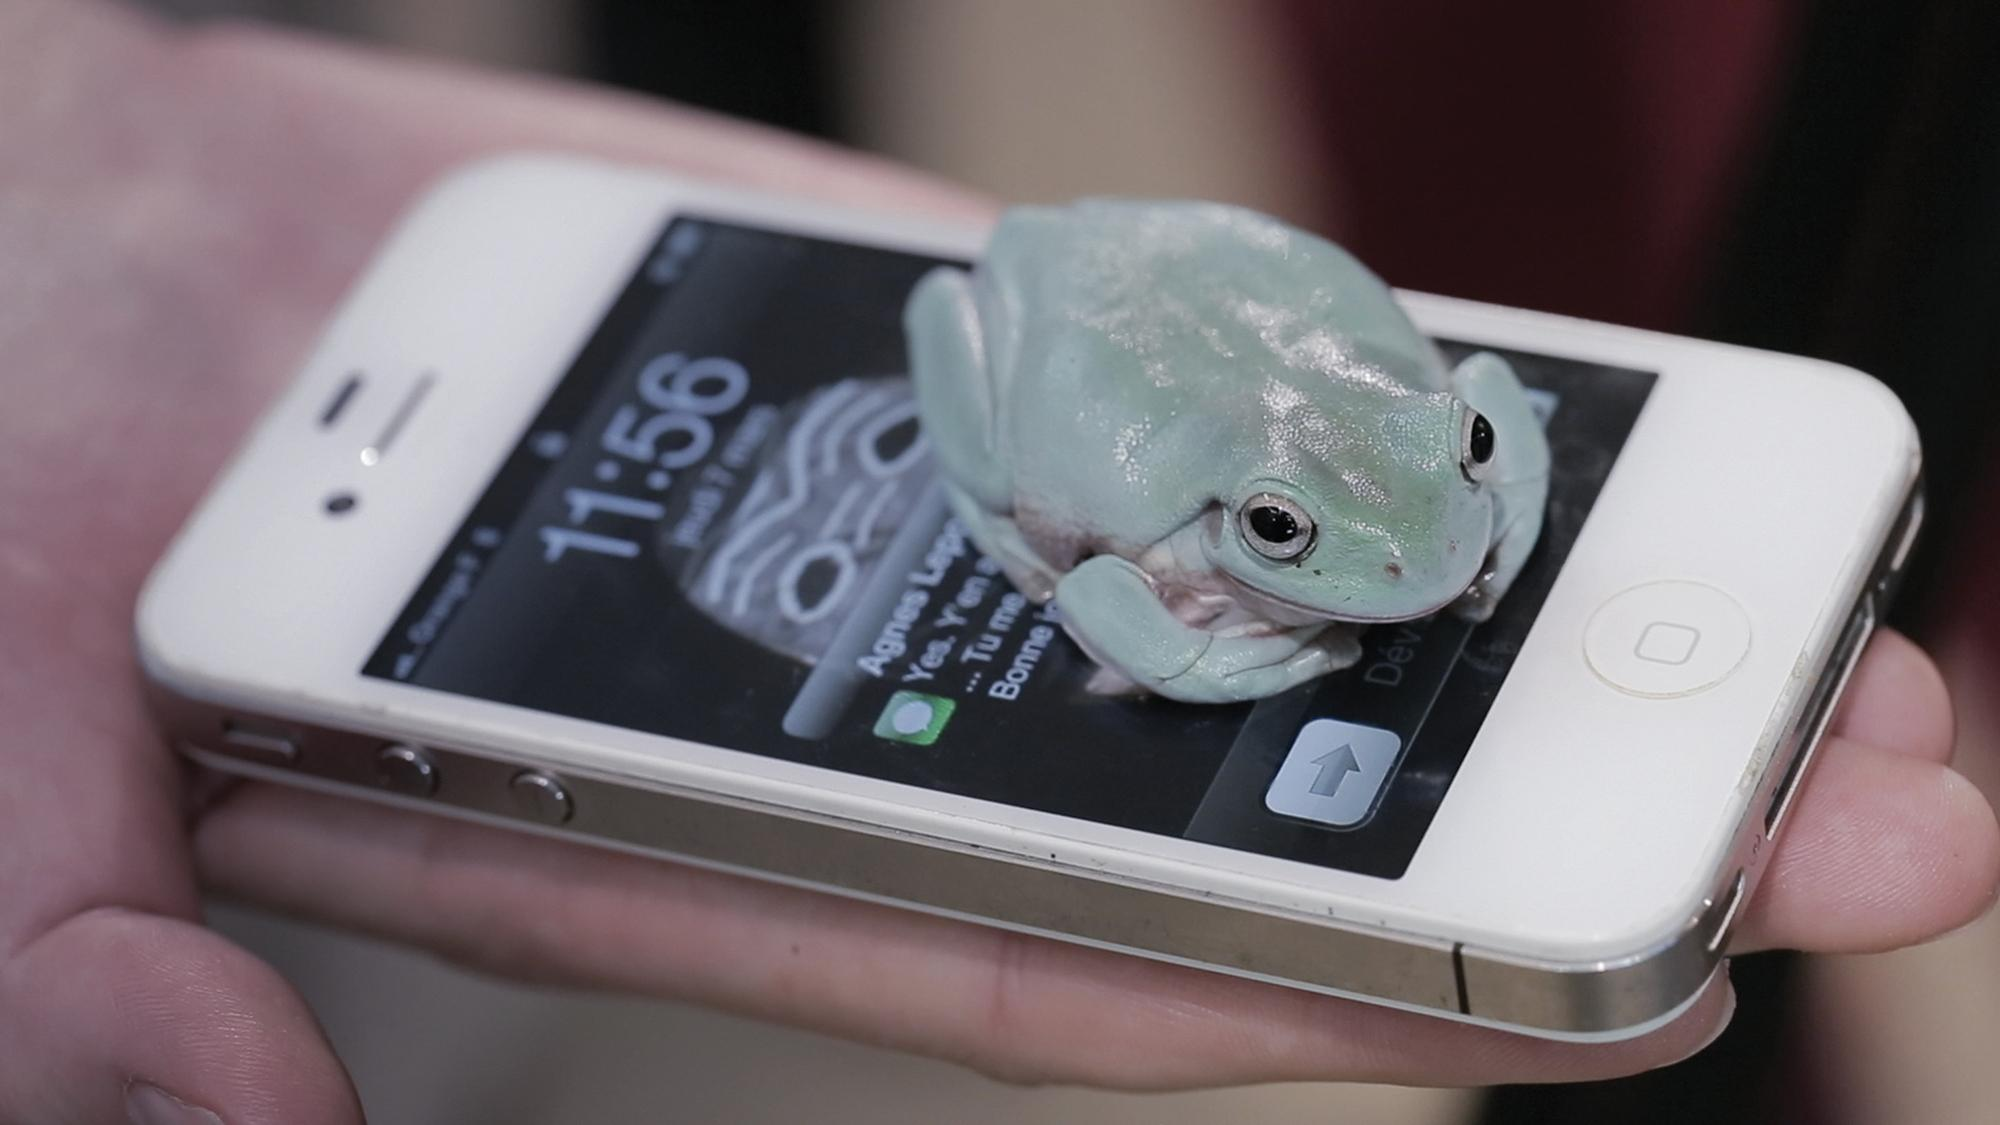 A frog sits on a cellphone, partially obscuring its lit screen; the cellphone rests on a person's outstretched palm.